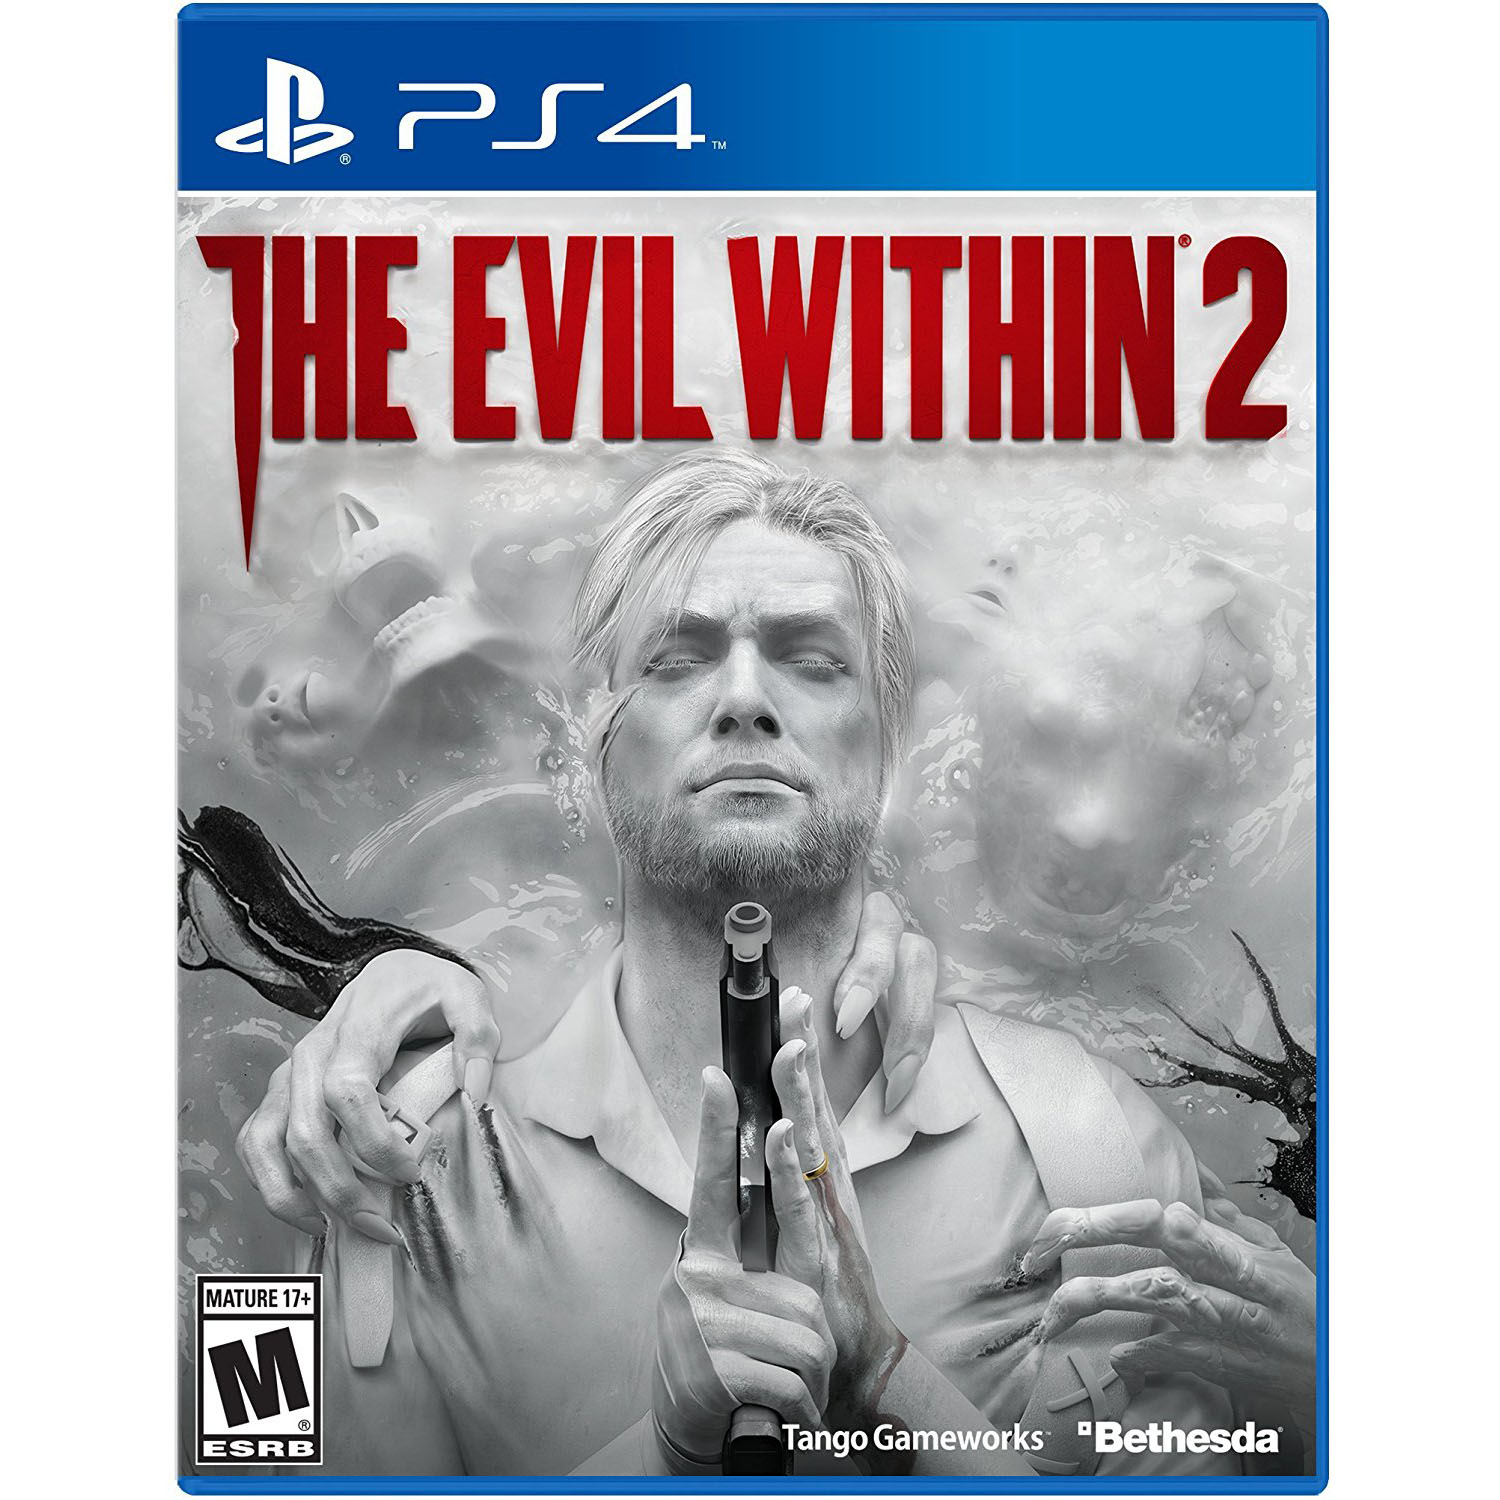 The Evil Within 2, Bethesda Softworks, PlayStation 4, REFURBISHED/PREOWNED